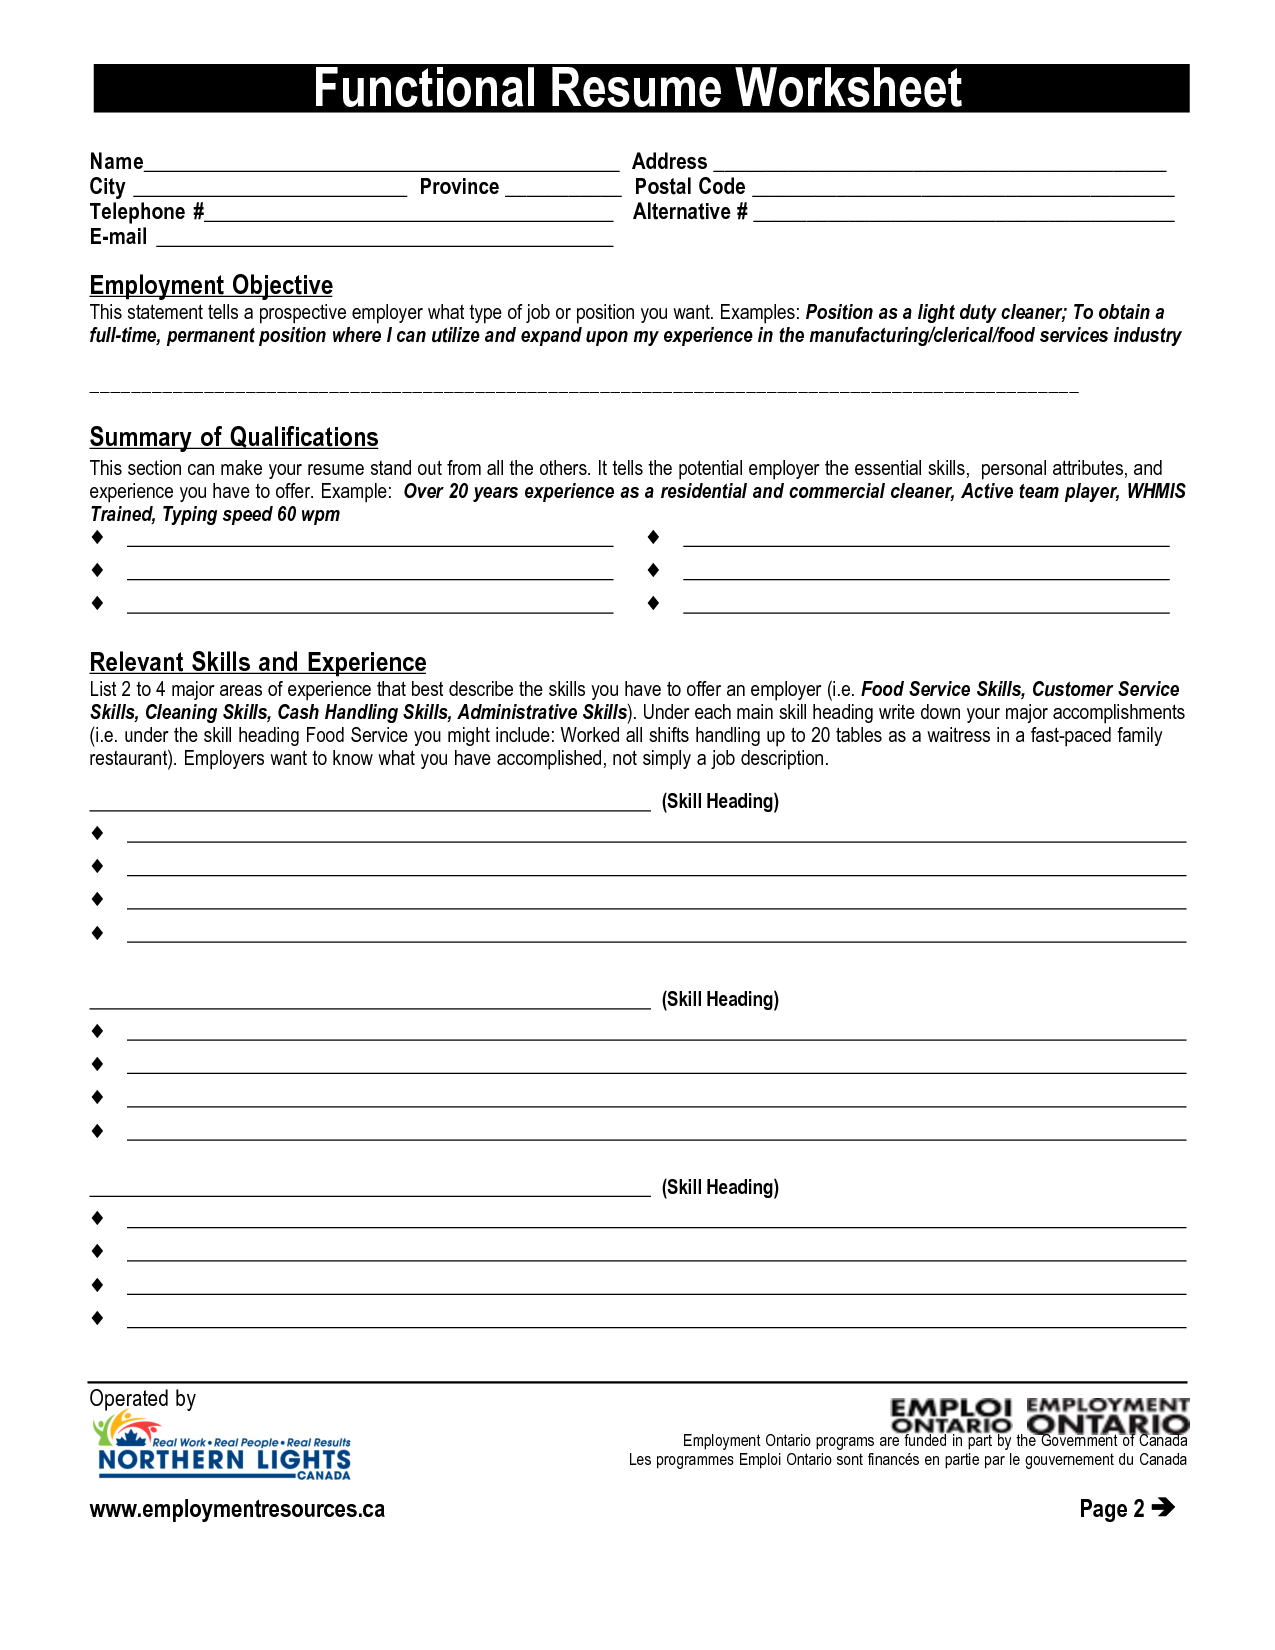 Resume Worksheet Printable And High School Template Building | Printable Resume Builder Worksheet